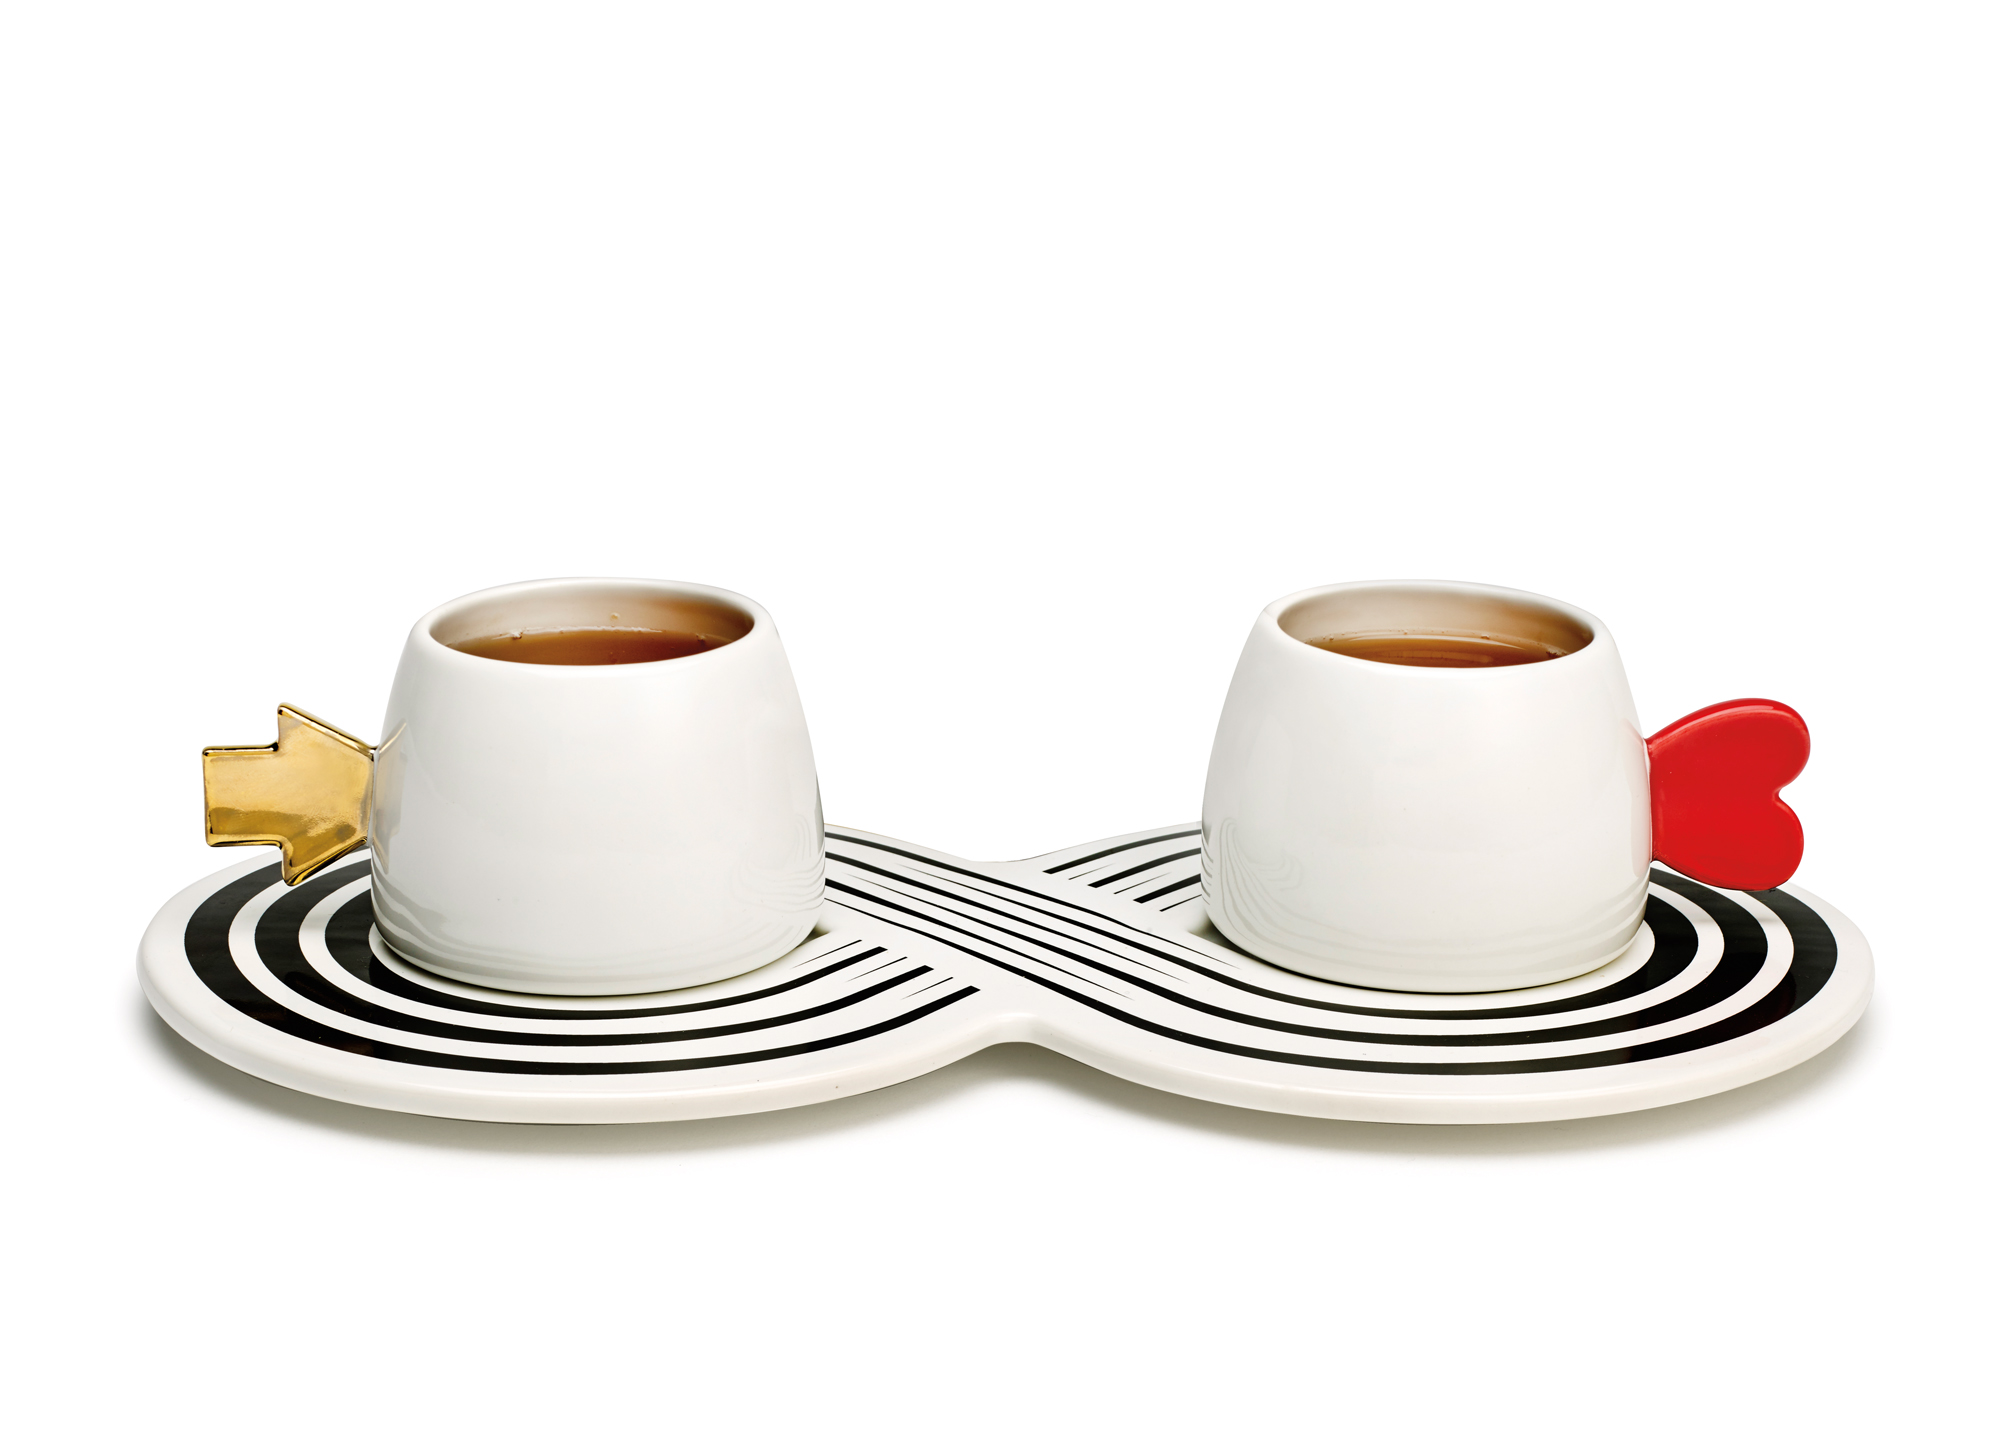 Connect with Galerie  sc 1 st  Galerie Magazine & Line of Tableware by Italian Design Stars - Galerie